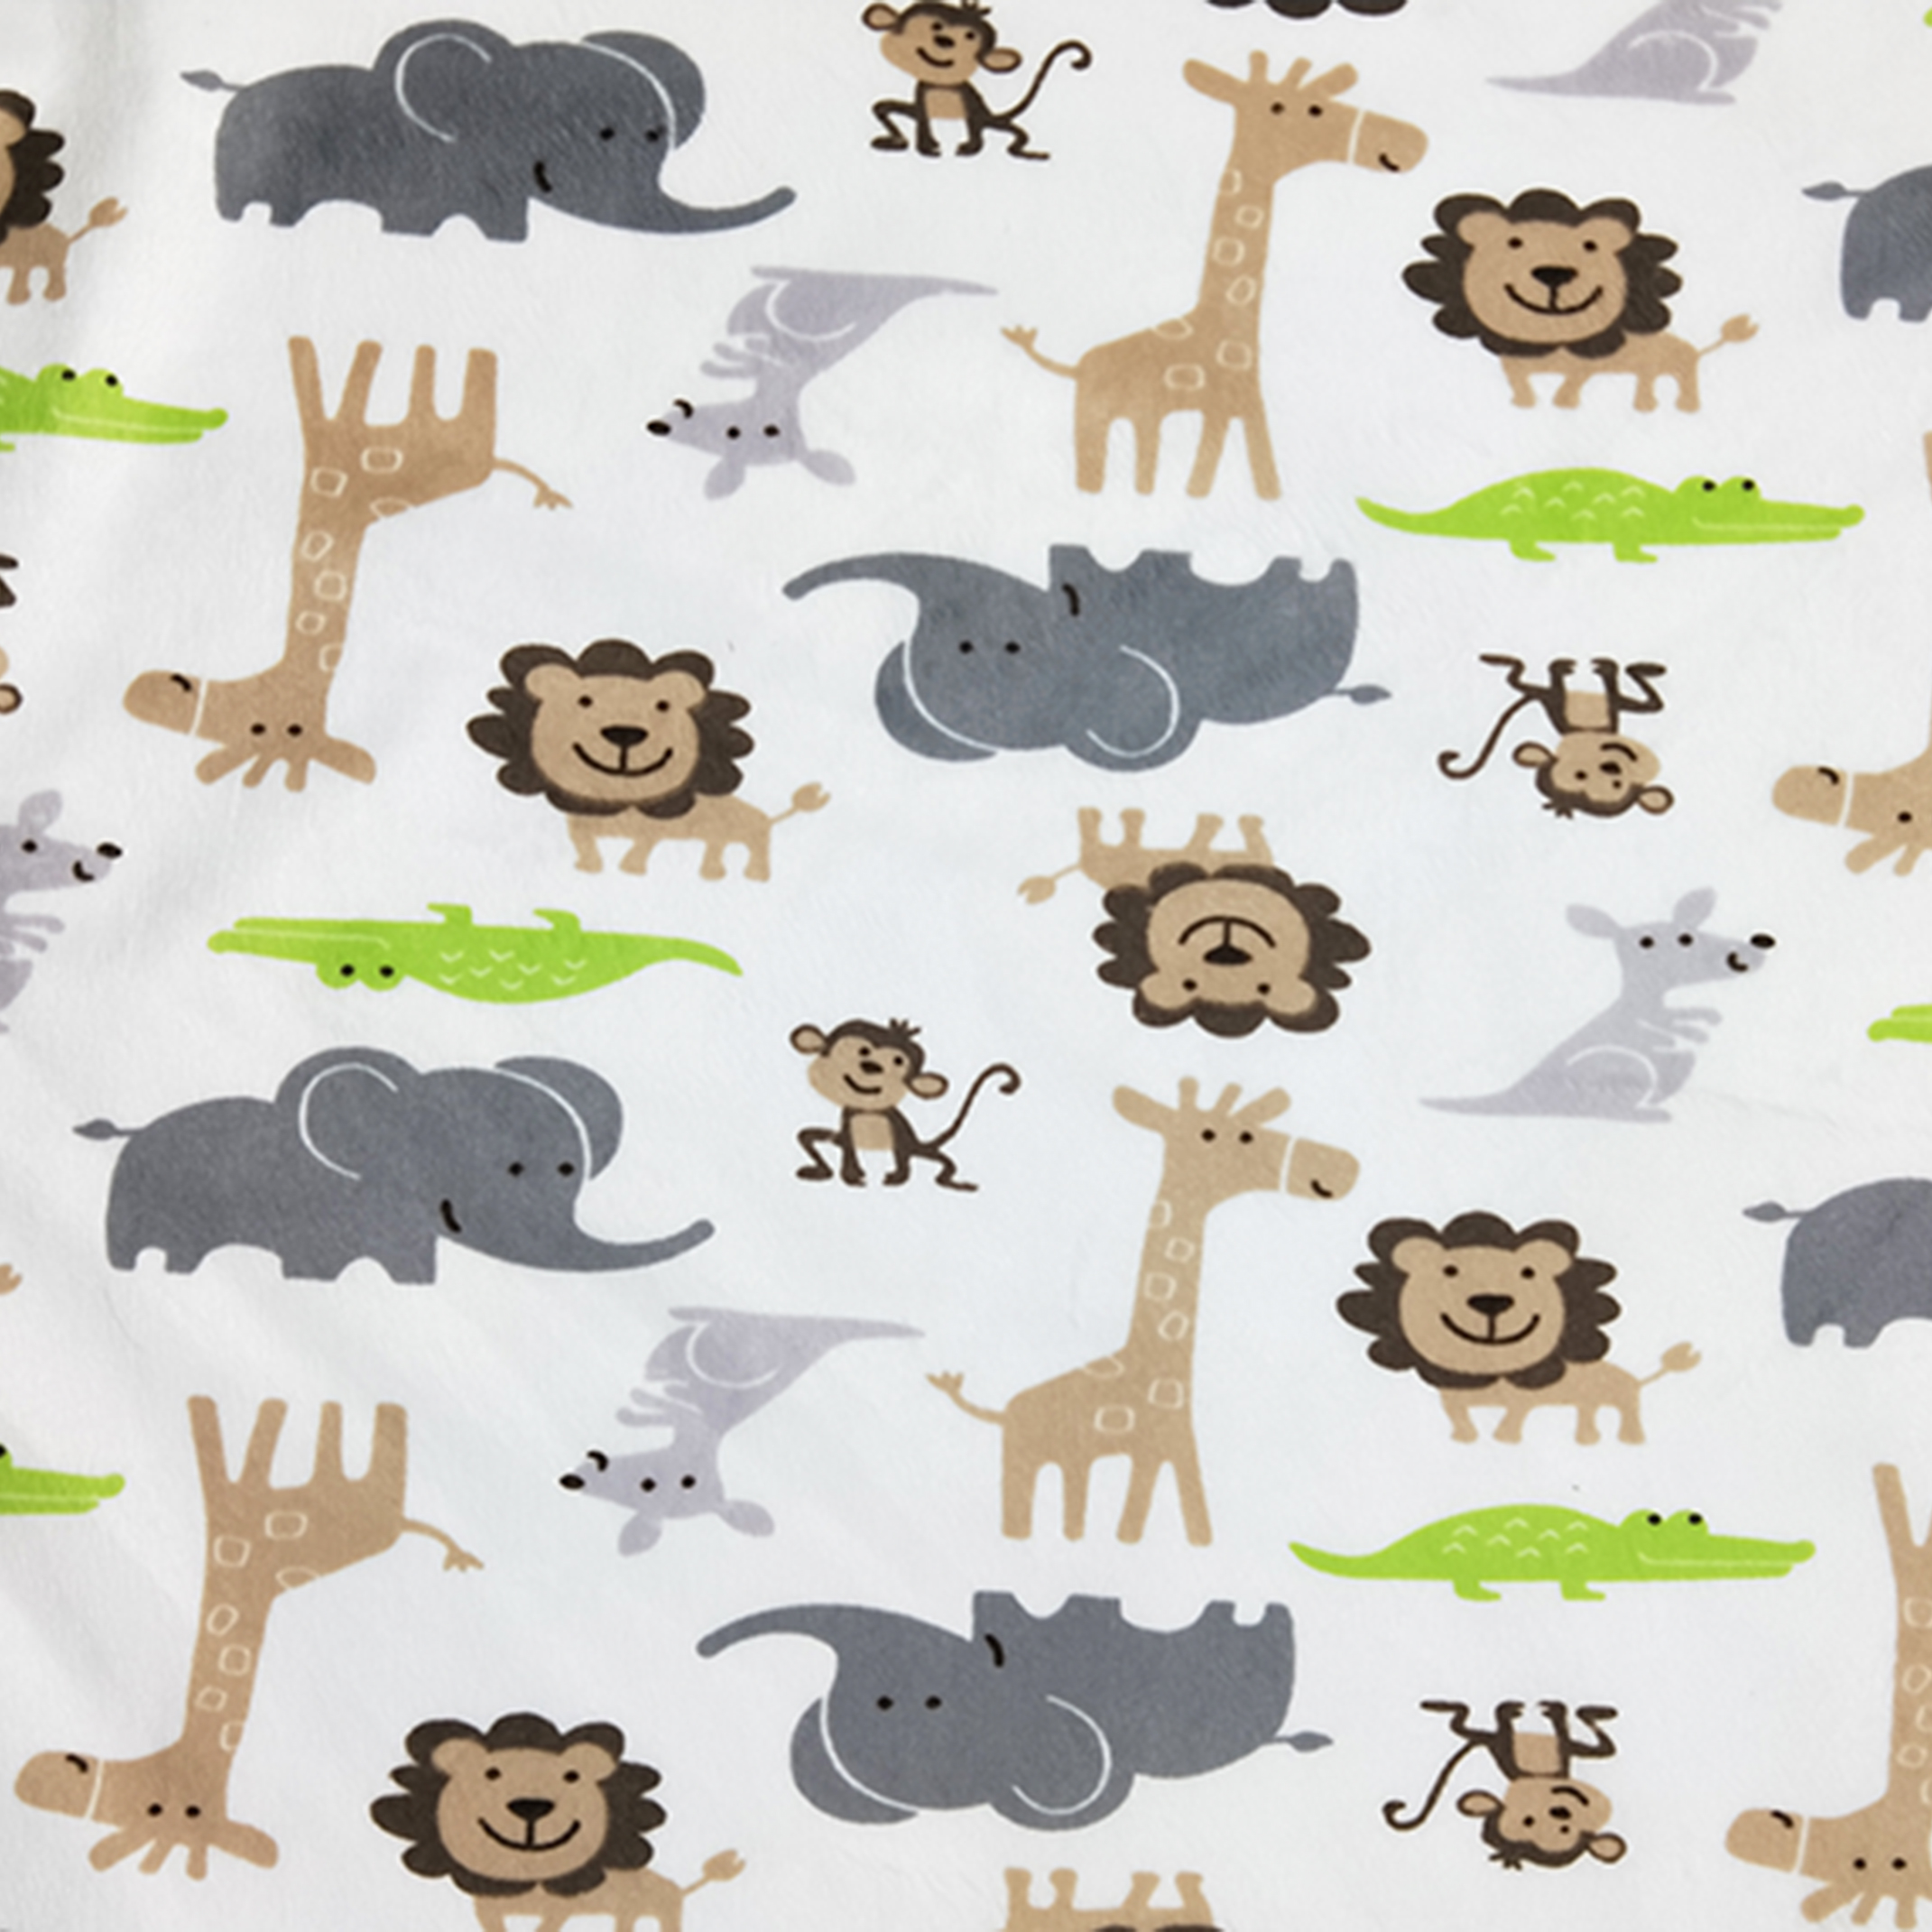 1 M Minky Printed Waterproof PUL Fabric for Diaper Material Breathable TPU Fabric DIY Baby Diapers Wet Bags Nappy PUL Fabric bamboo forest printed waterproof fabric shower curtain